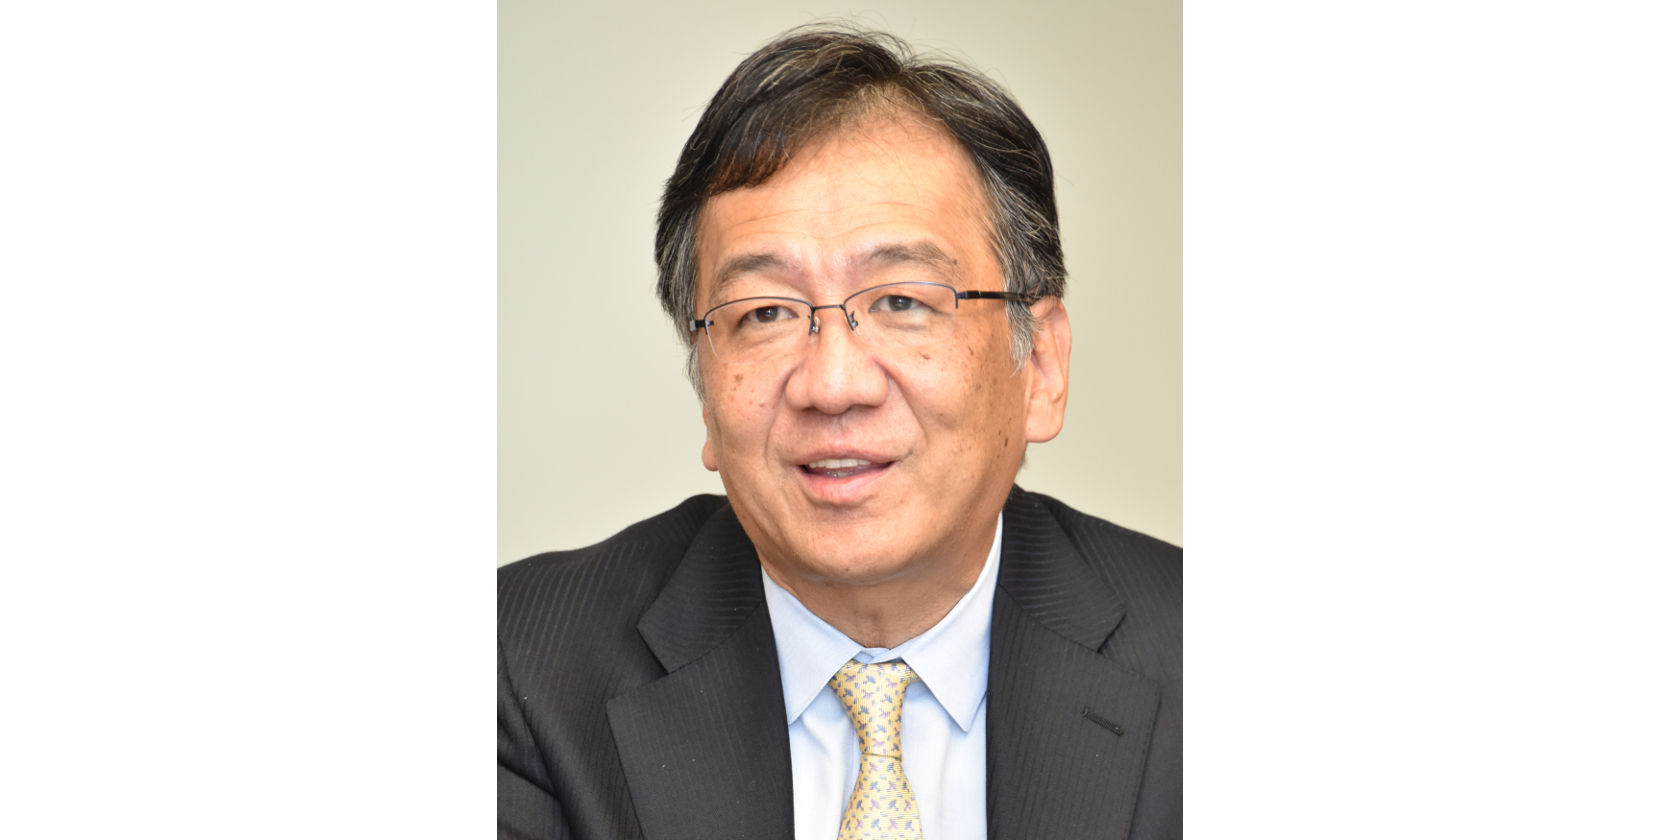 Interview: Mitsubishi Chemical CEO Discusses Changing of the Guard, Plans Moving Forward